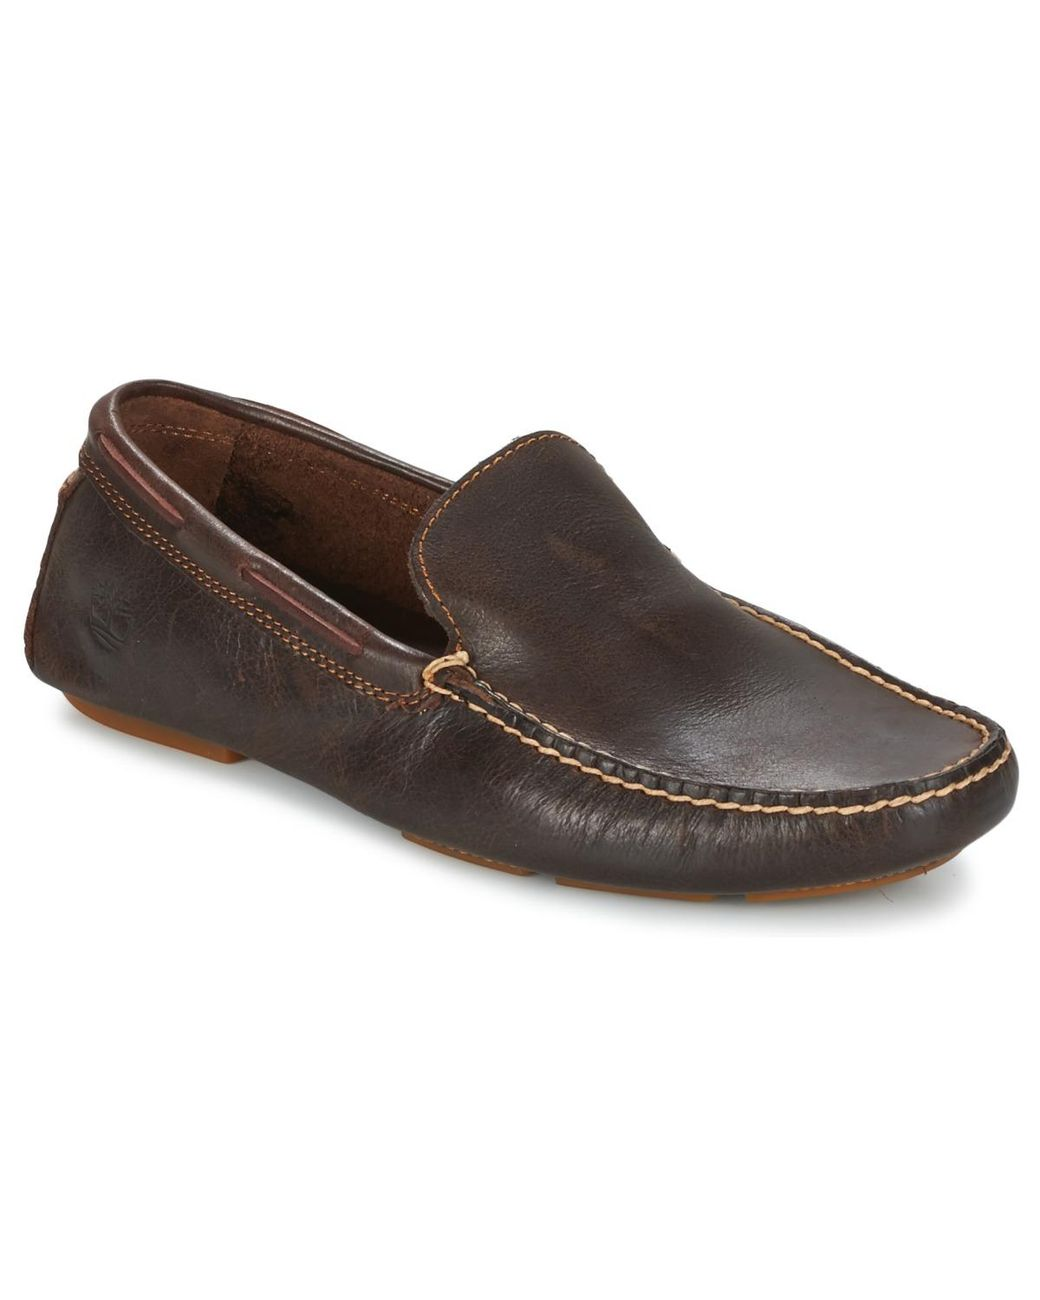 21dbeed8149 Timberland Heritage Driver Venetian Loafers   Casual Shoes in Brown ...